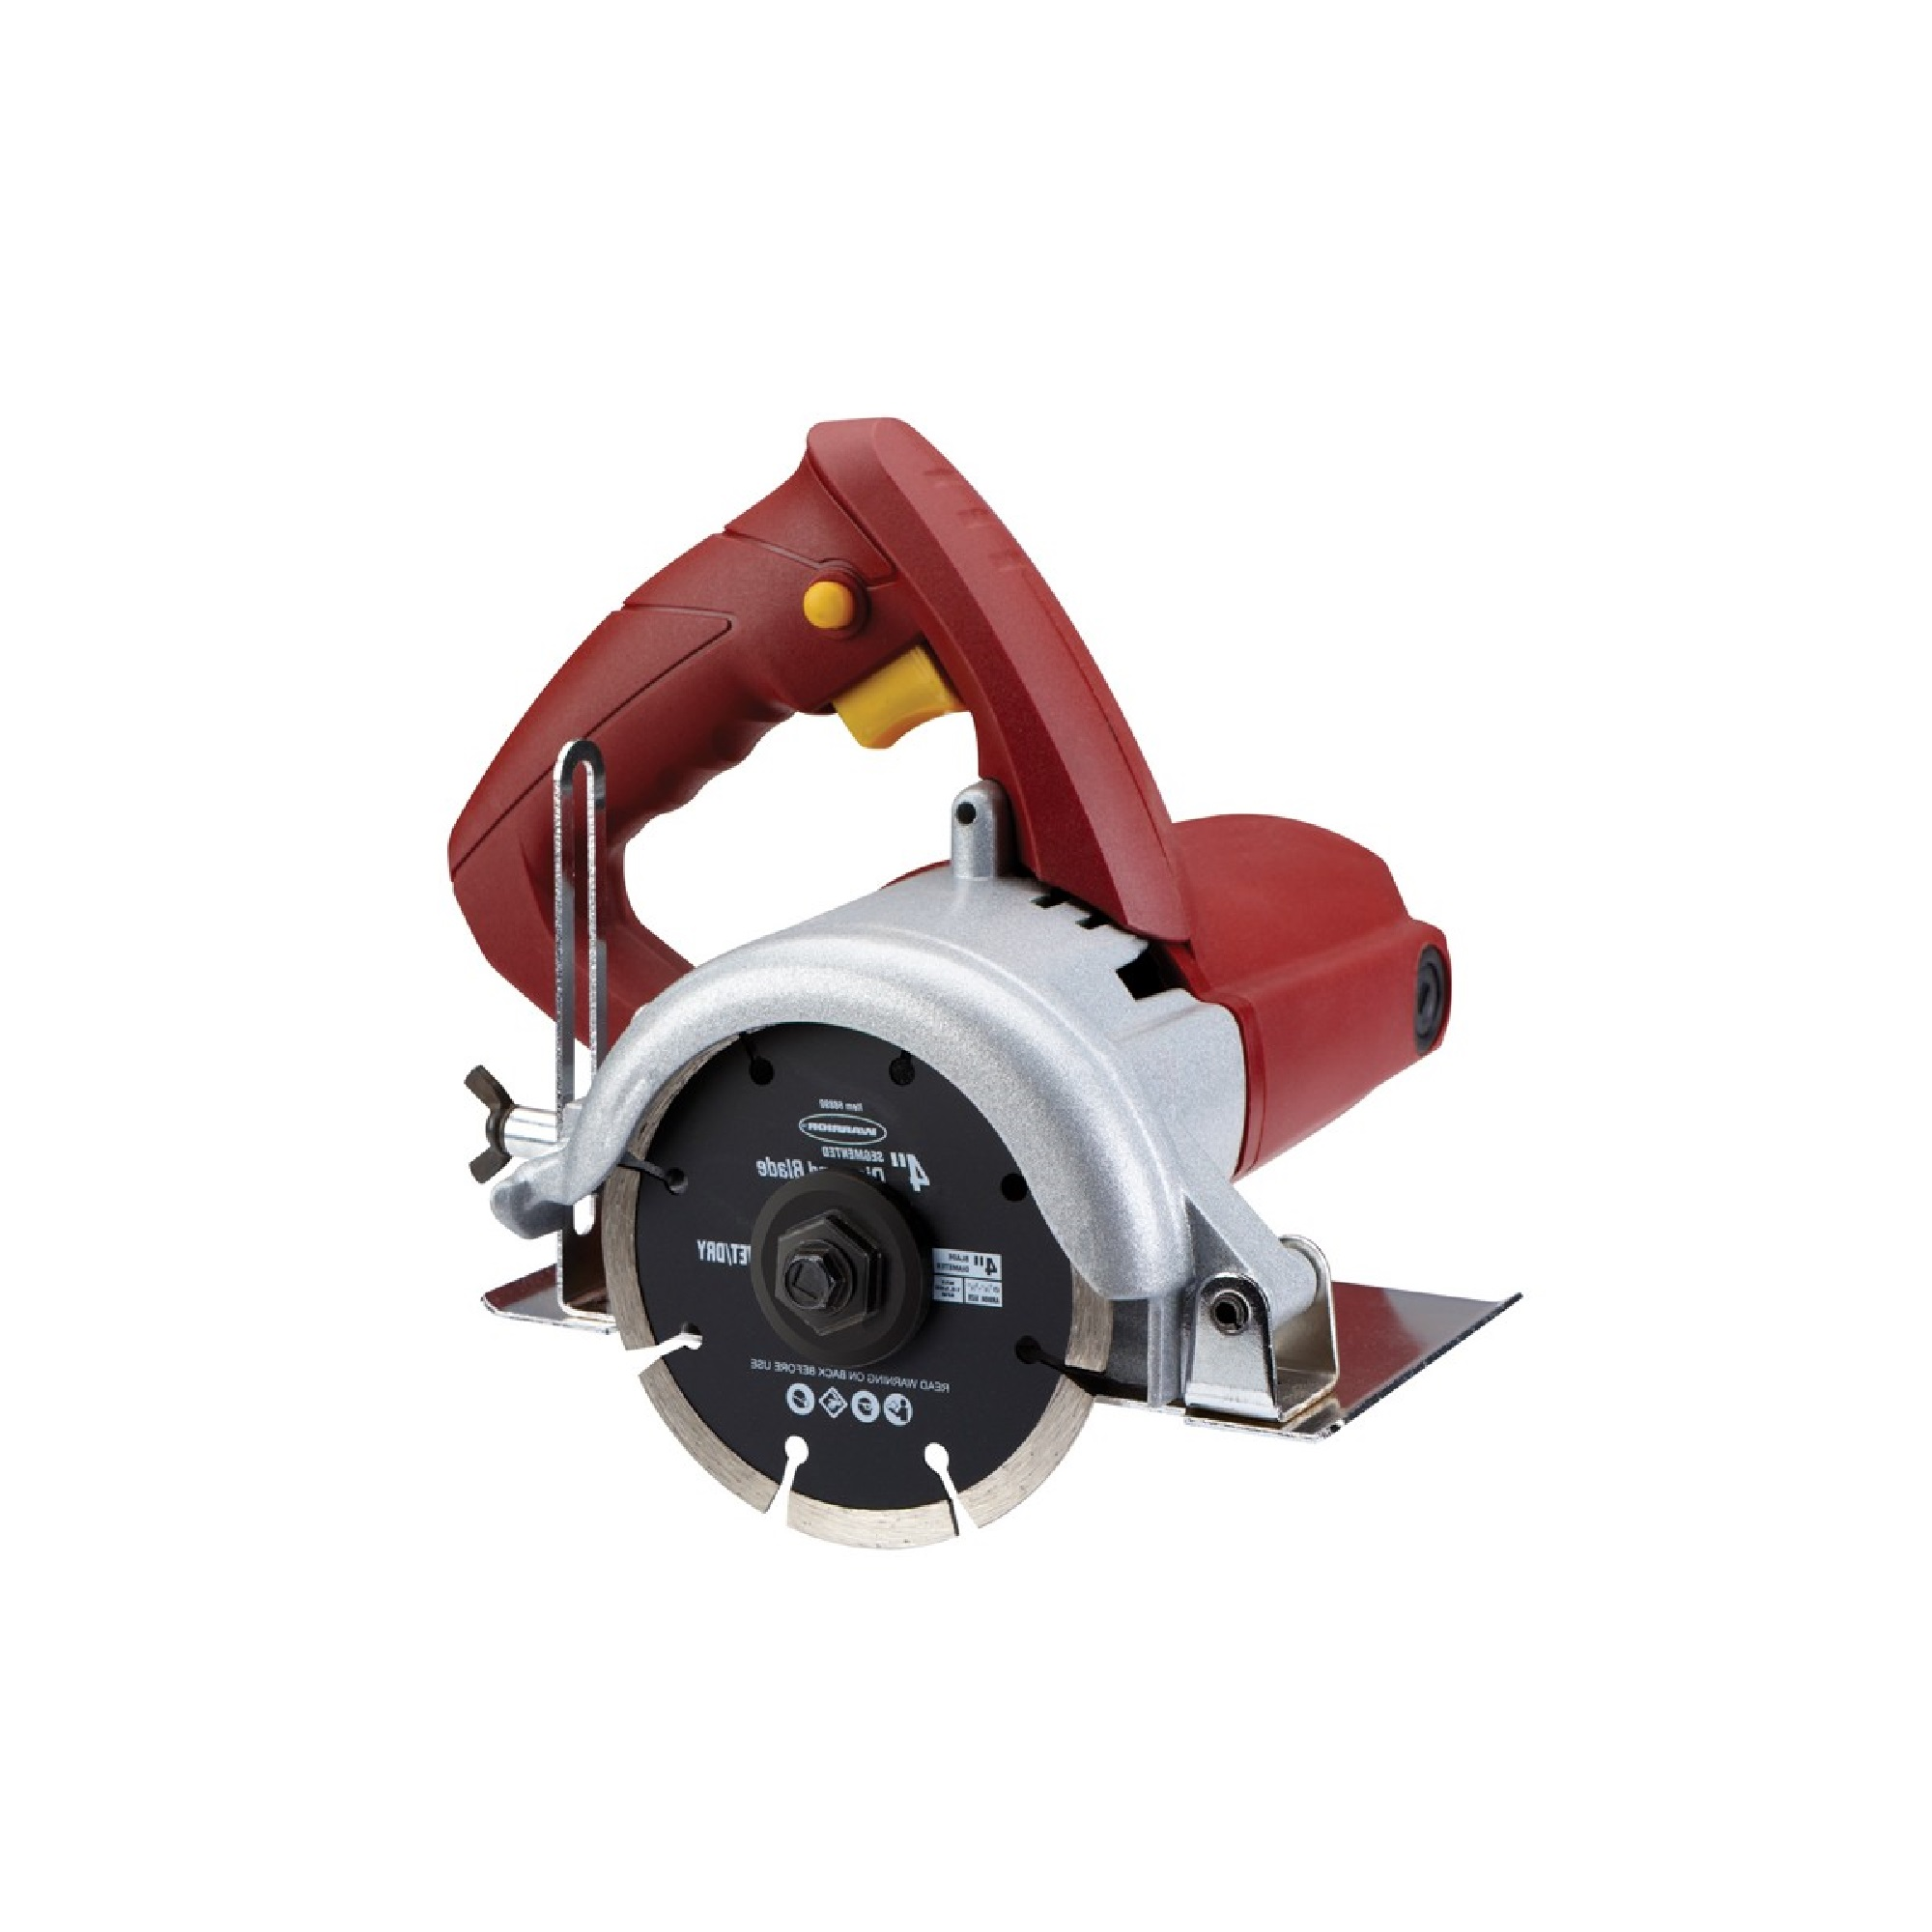 4 in handheld dry cut tile saw compact